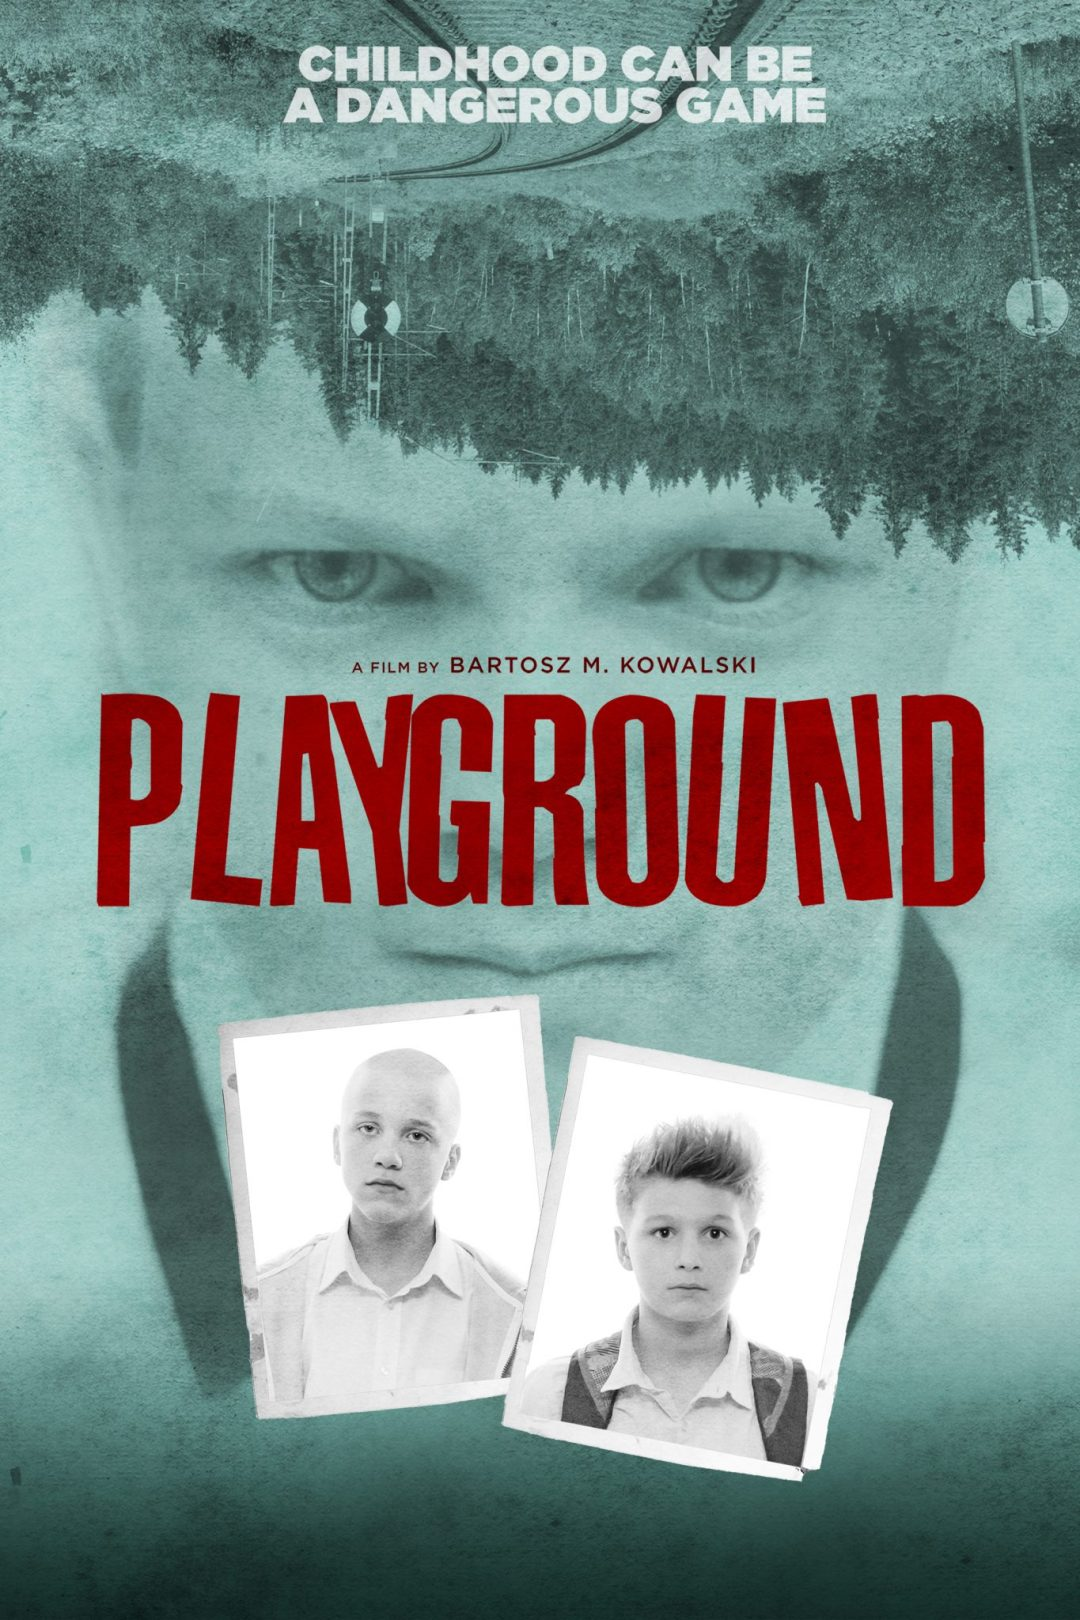 'The Playground' – Childhood Can be a Dangerous Game.